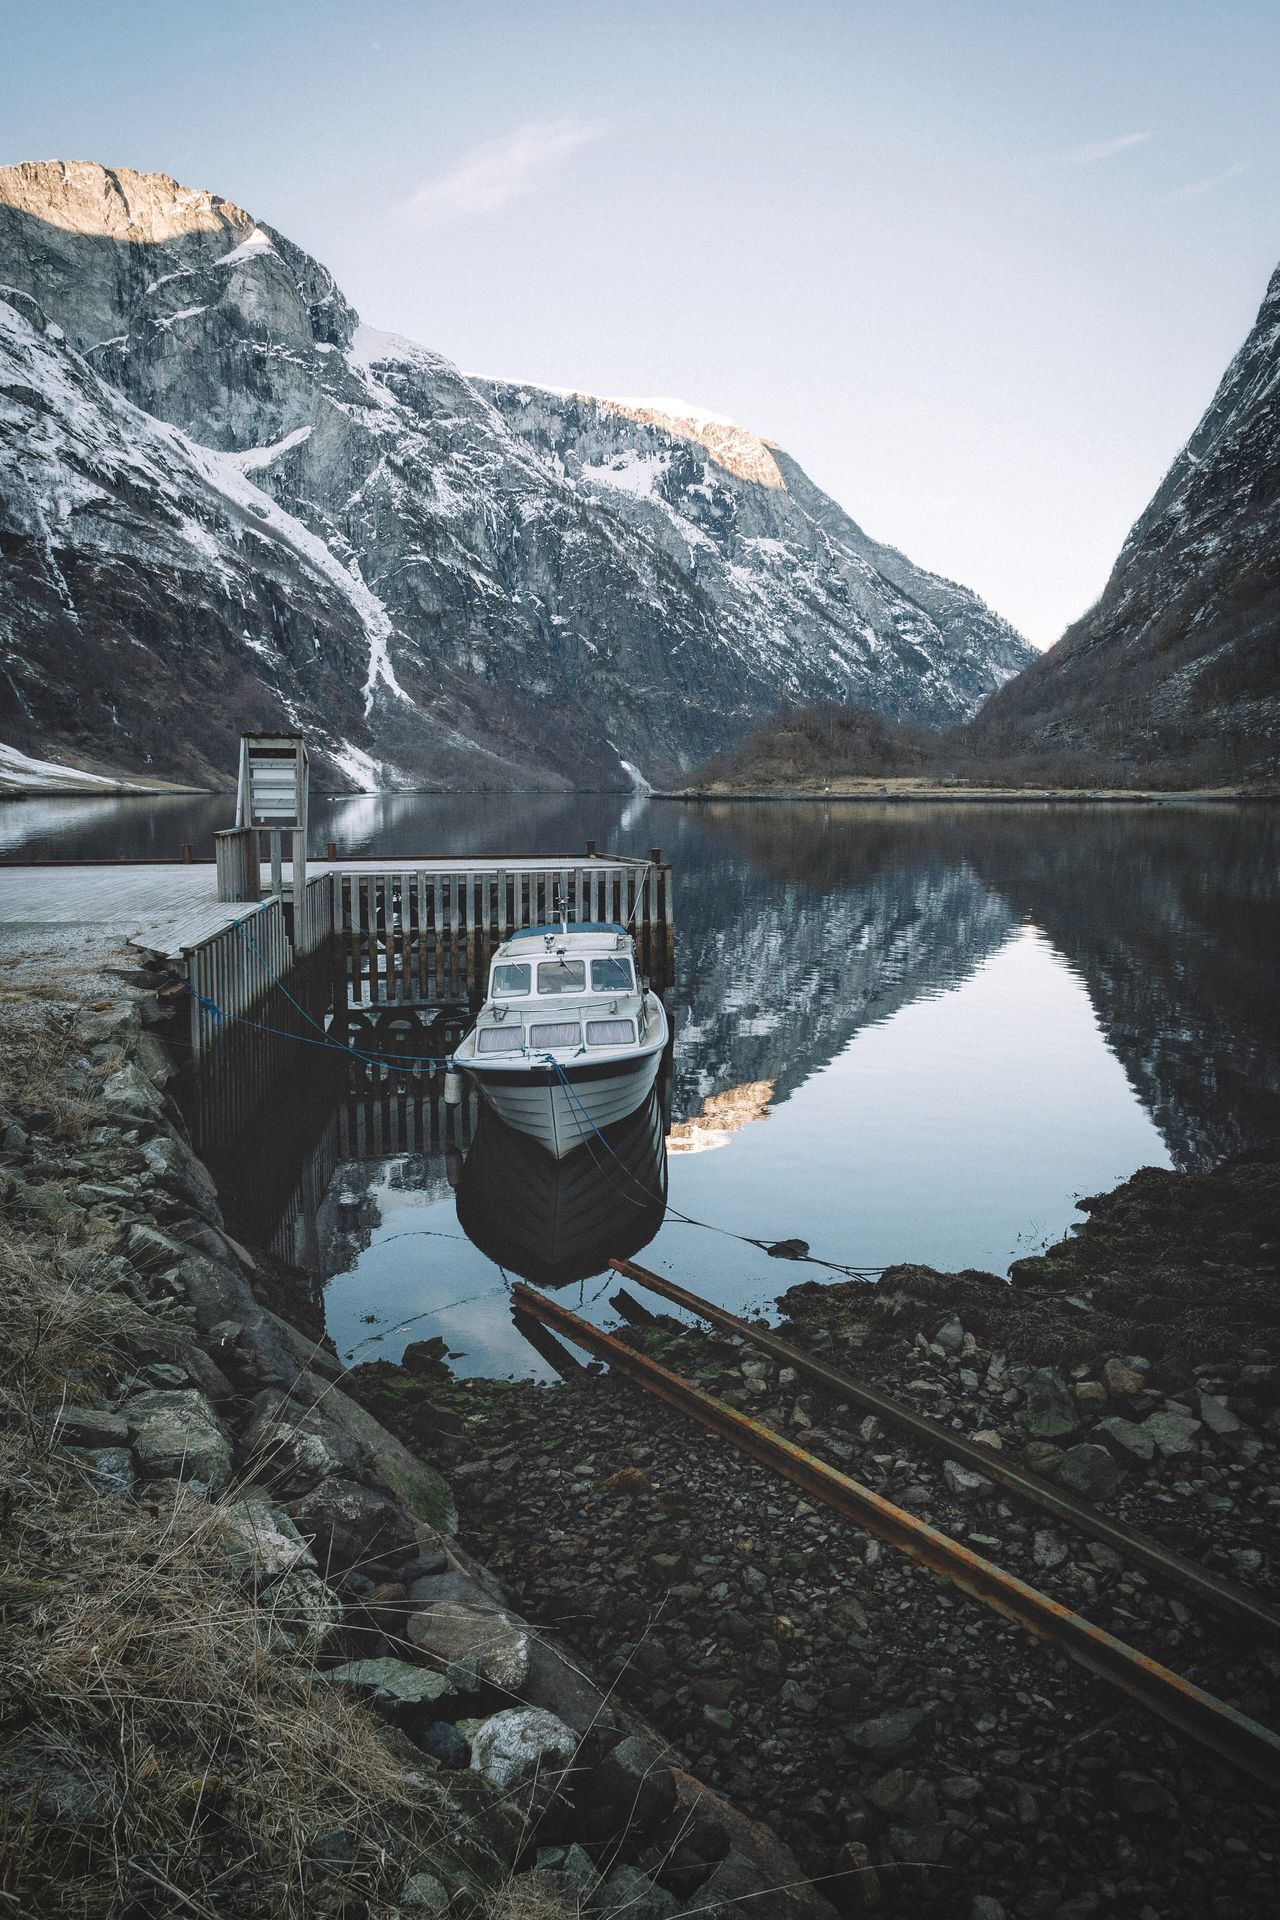 Boat Norway Explore Outdoors Vscocam EyeEm Best Shots Roadtrip Travel Rural Fjords Power In Nature Landscape Mountains Nature Exploring Winter Fresh on Market April 2016 The Great Outdoors - 2016 EyeEm Awards